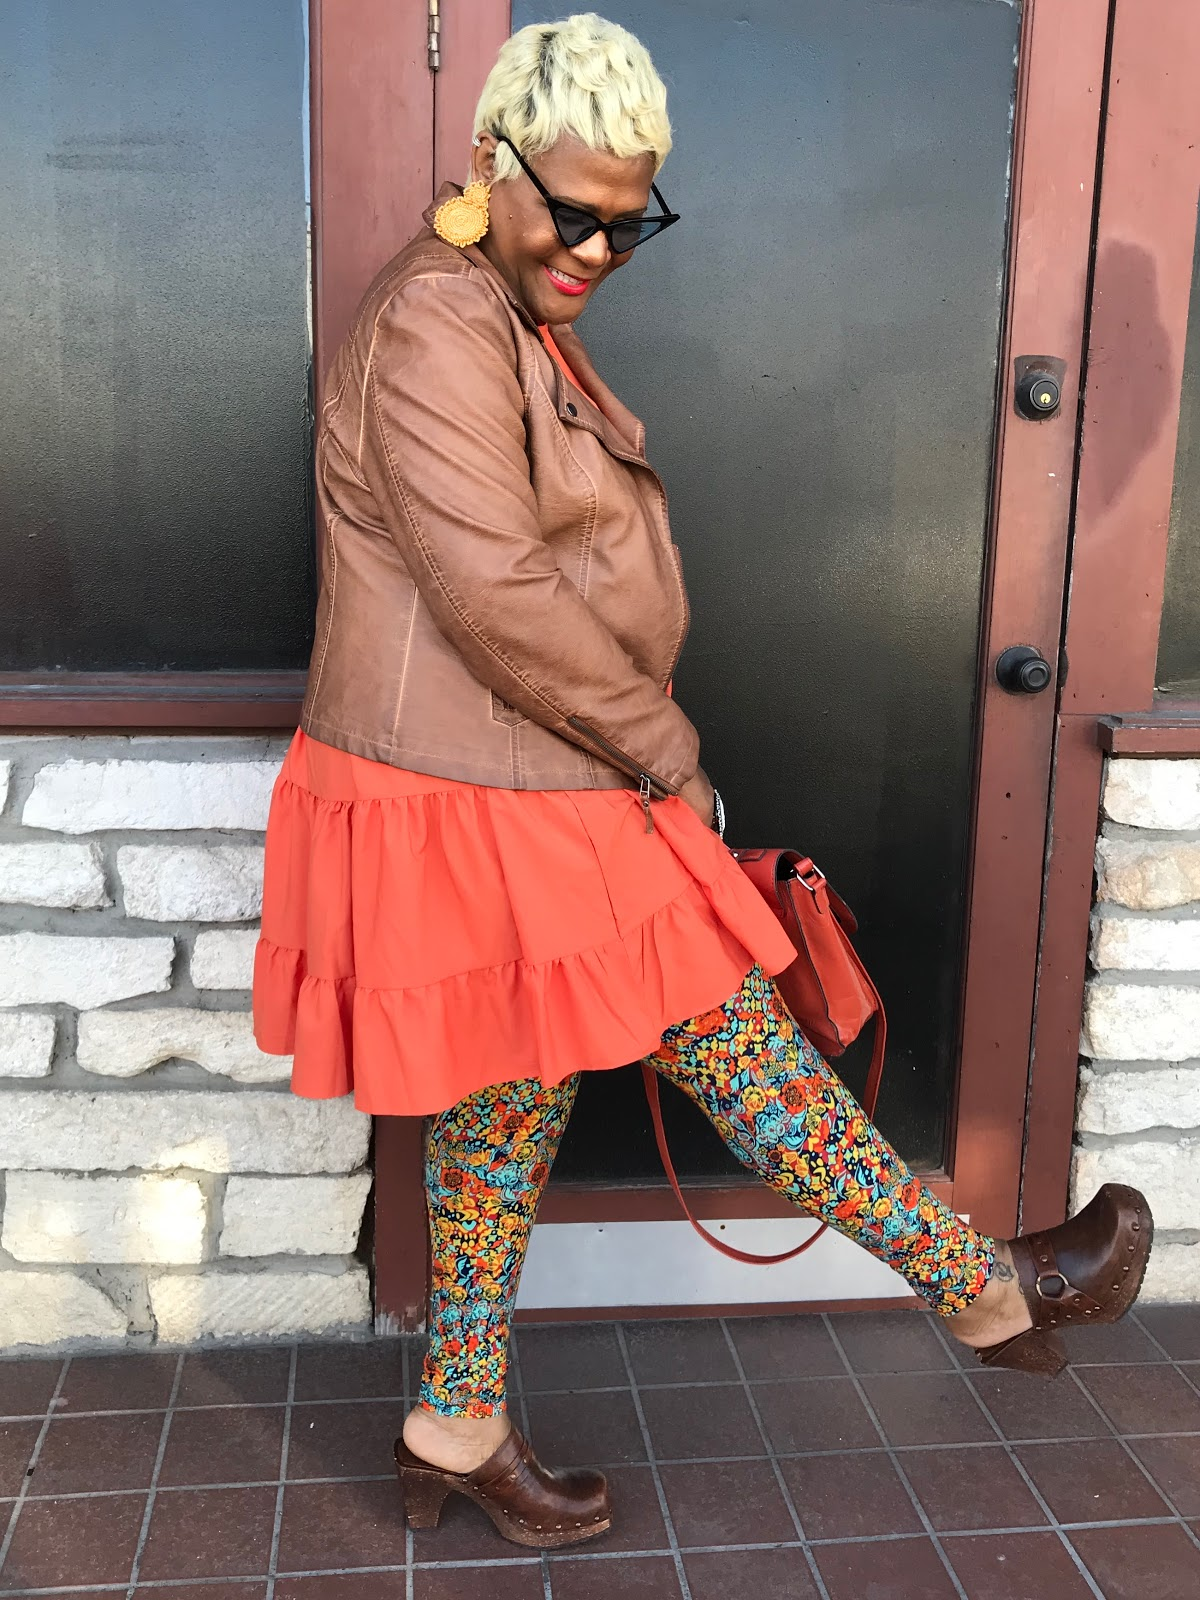 What I wore today: orange baby doll dress, colorful leggings, leather jacket and orange handbag.